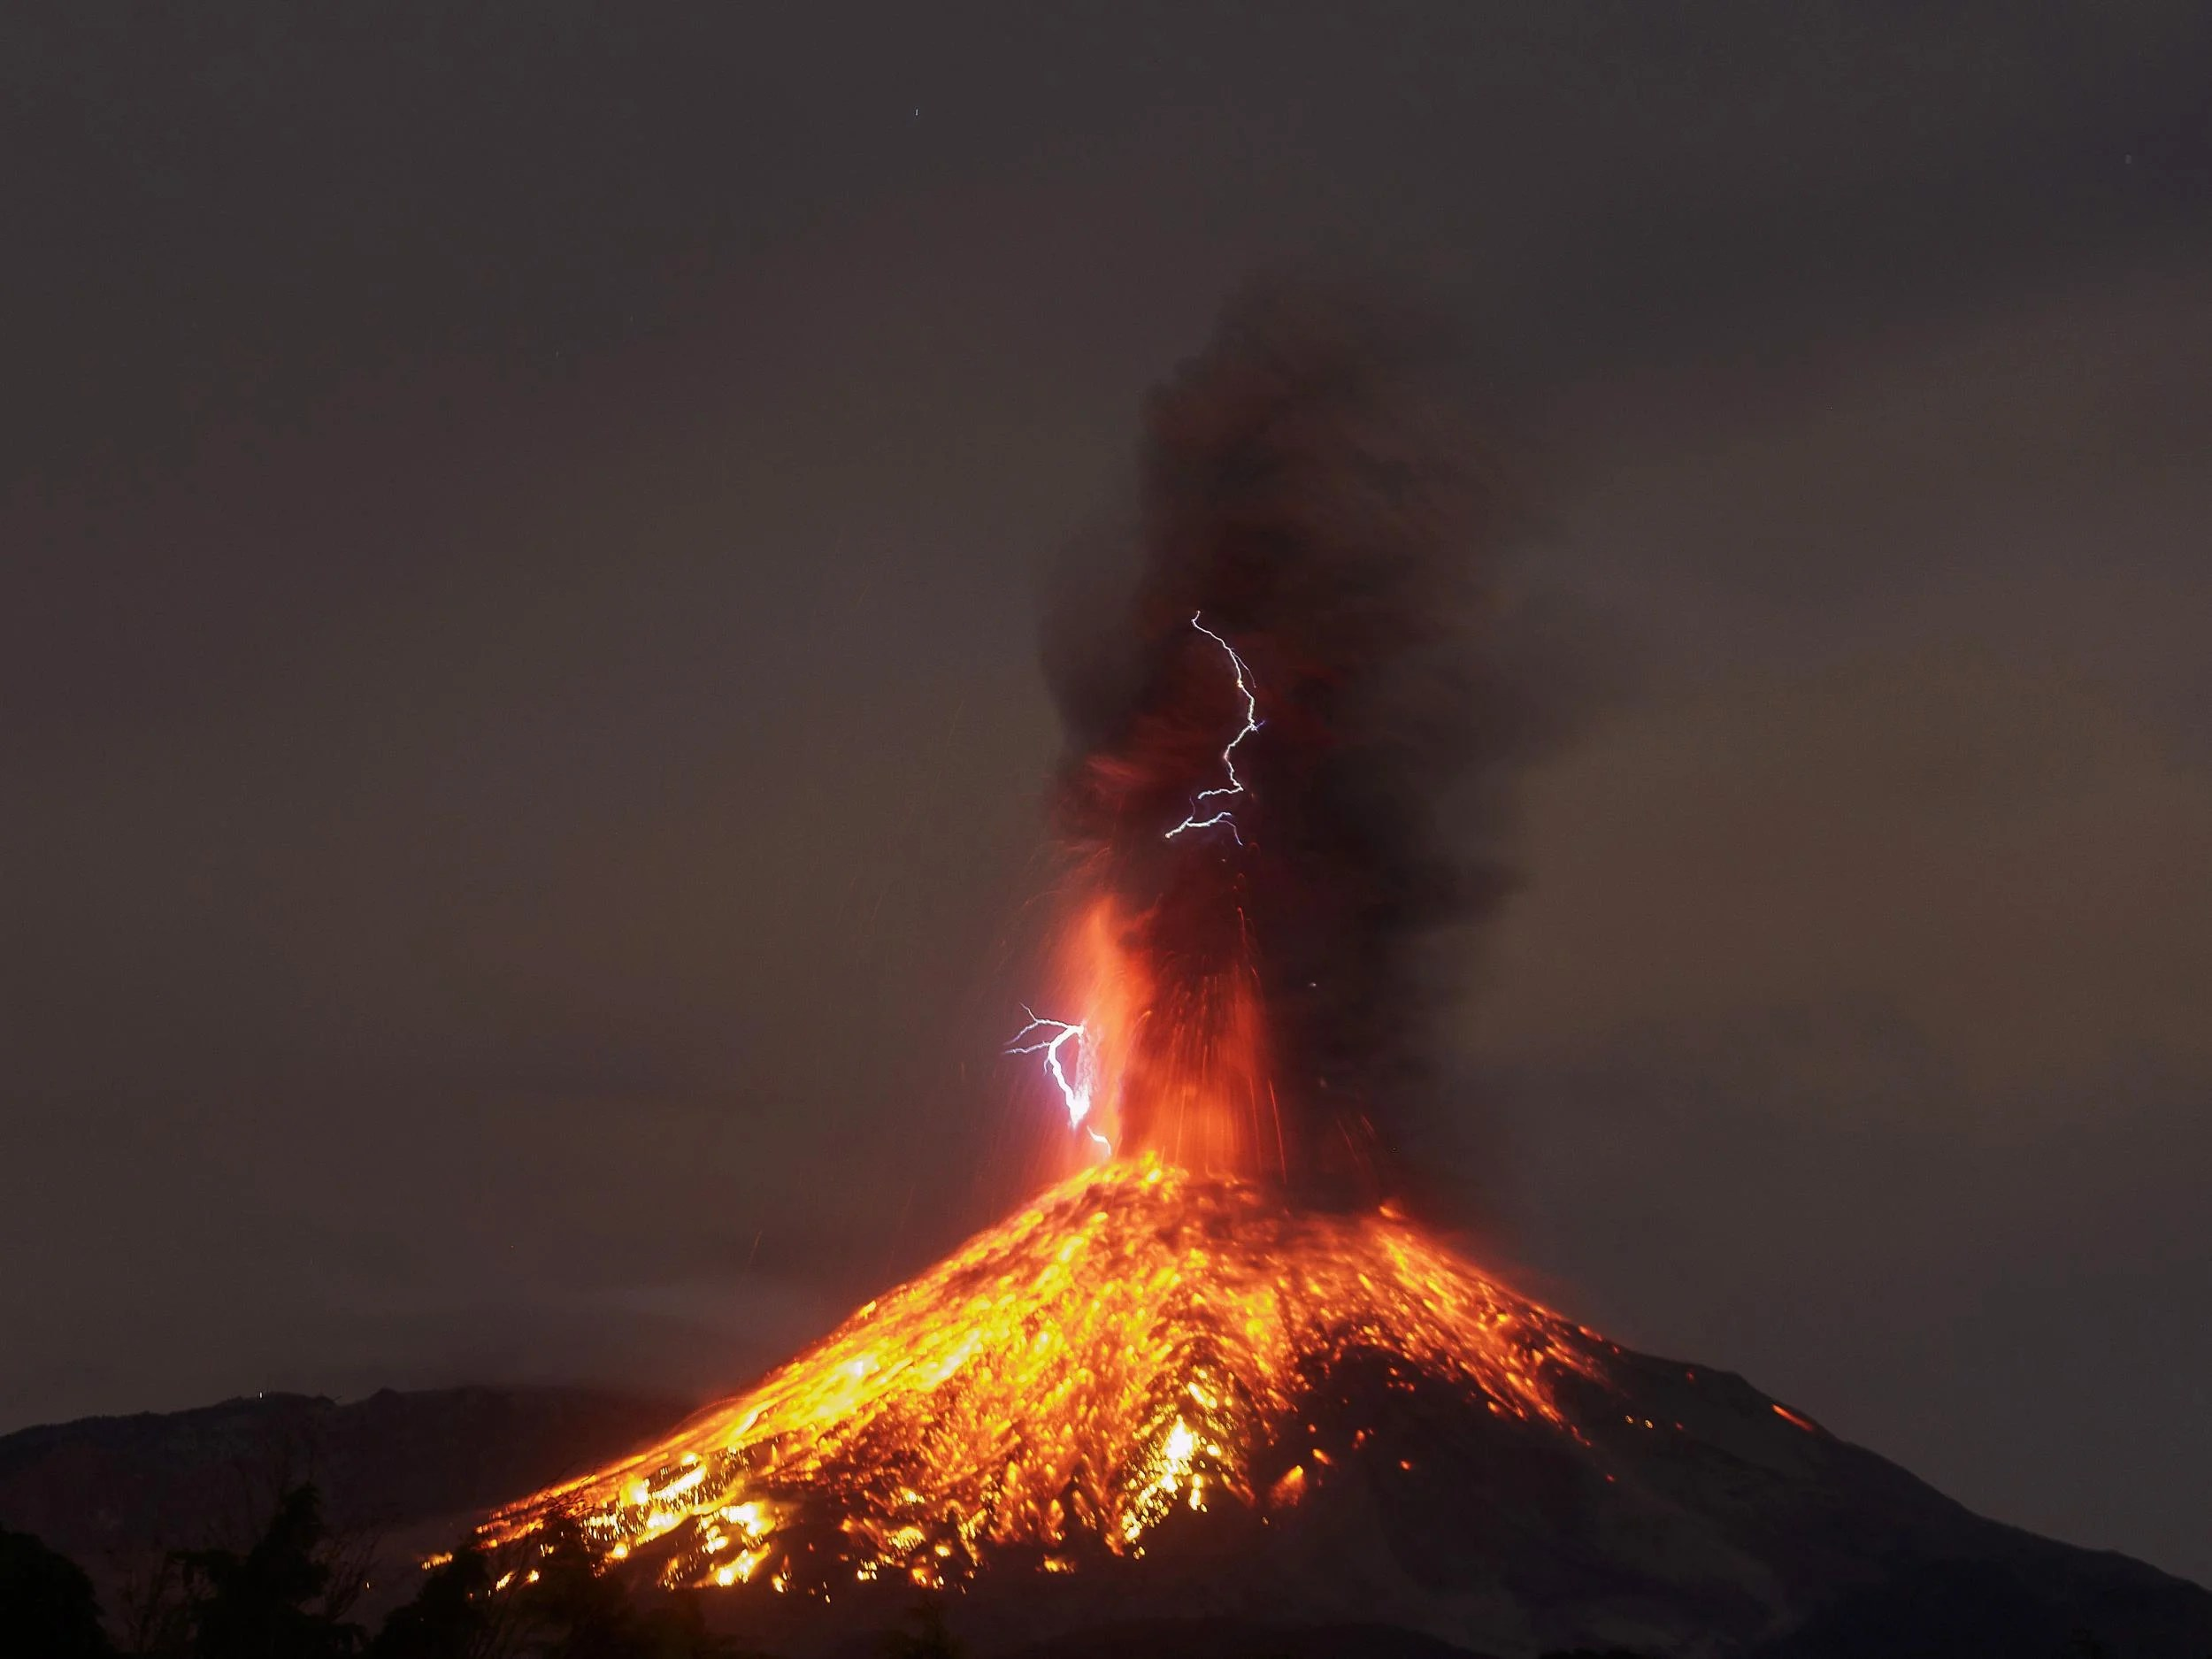 Volcanic Thunder Sound Captured For First Time By